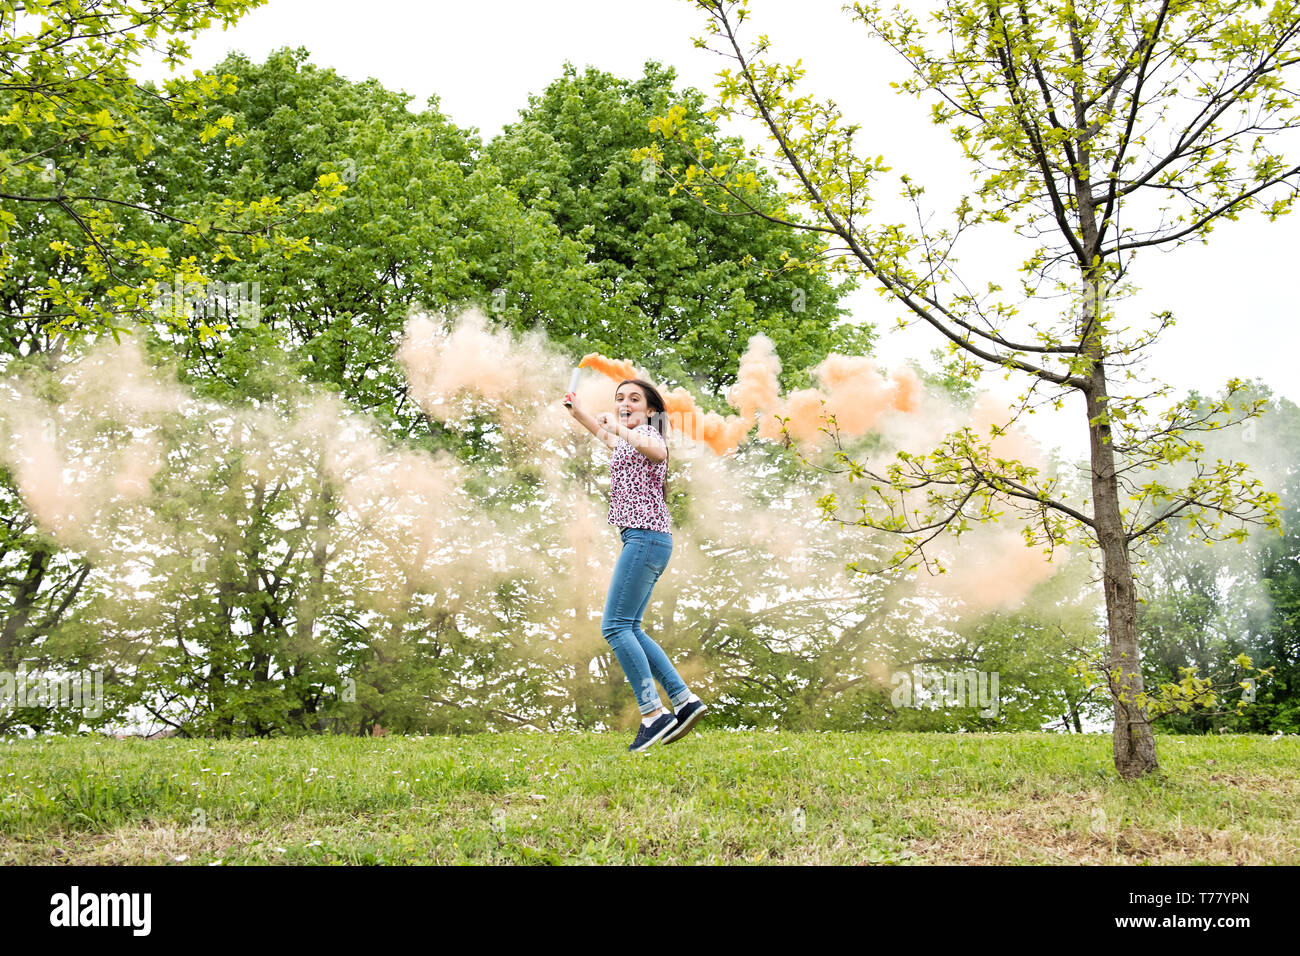 Happy energetic young girl with a smoke flare running and jumping in a garden laughing with excitement - Stock Image